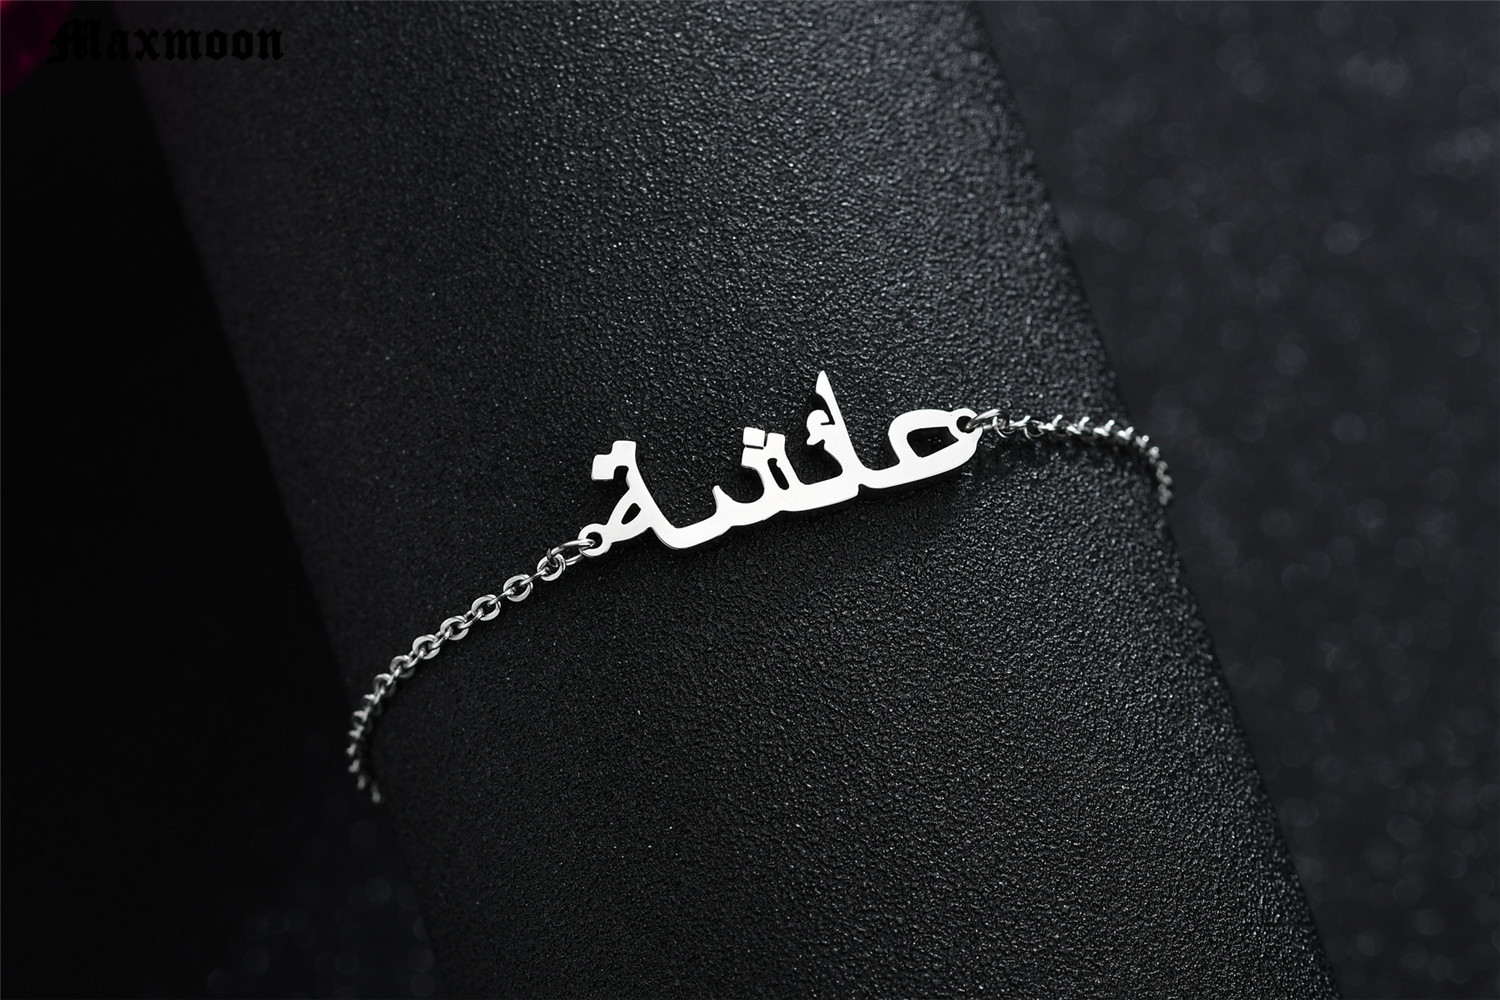 Maxmoon Charm Islamic Name Bracelet Jewelry  Muhammad Arabic Letter Bracelet for Men Women Pulseras Mujer